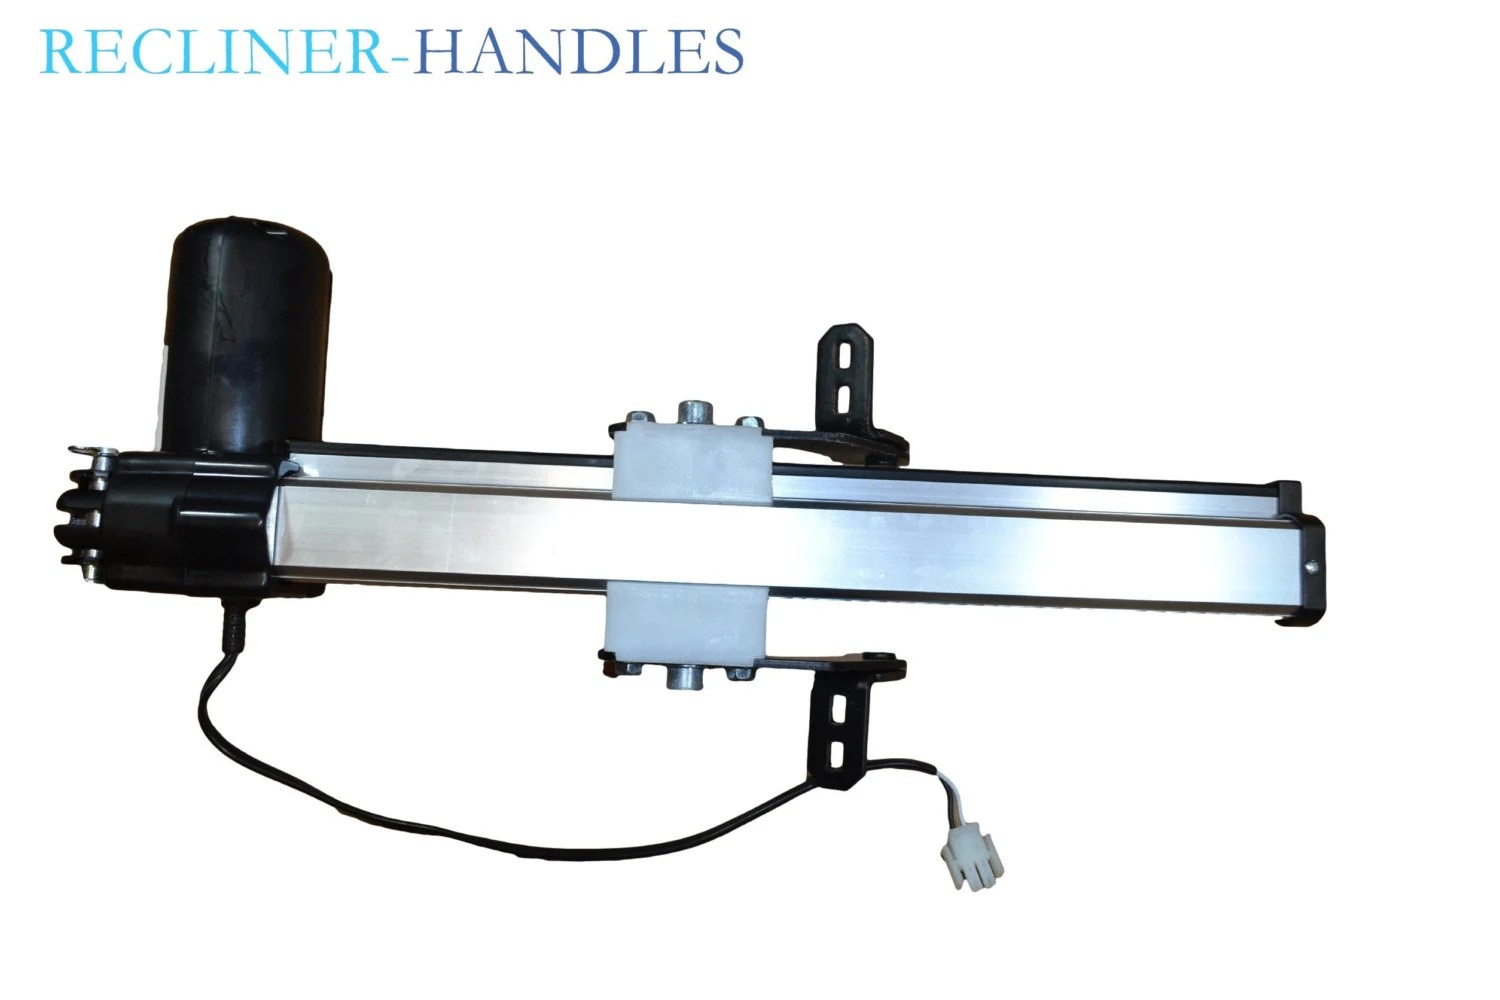 power lift chair repair blue and ottoman okin refined jldq 6 123 336 linear actuator motor with